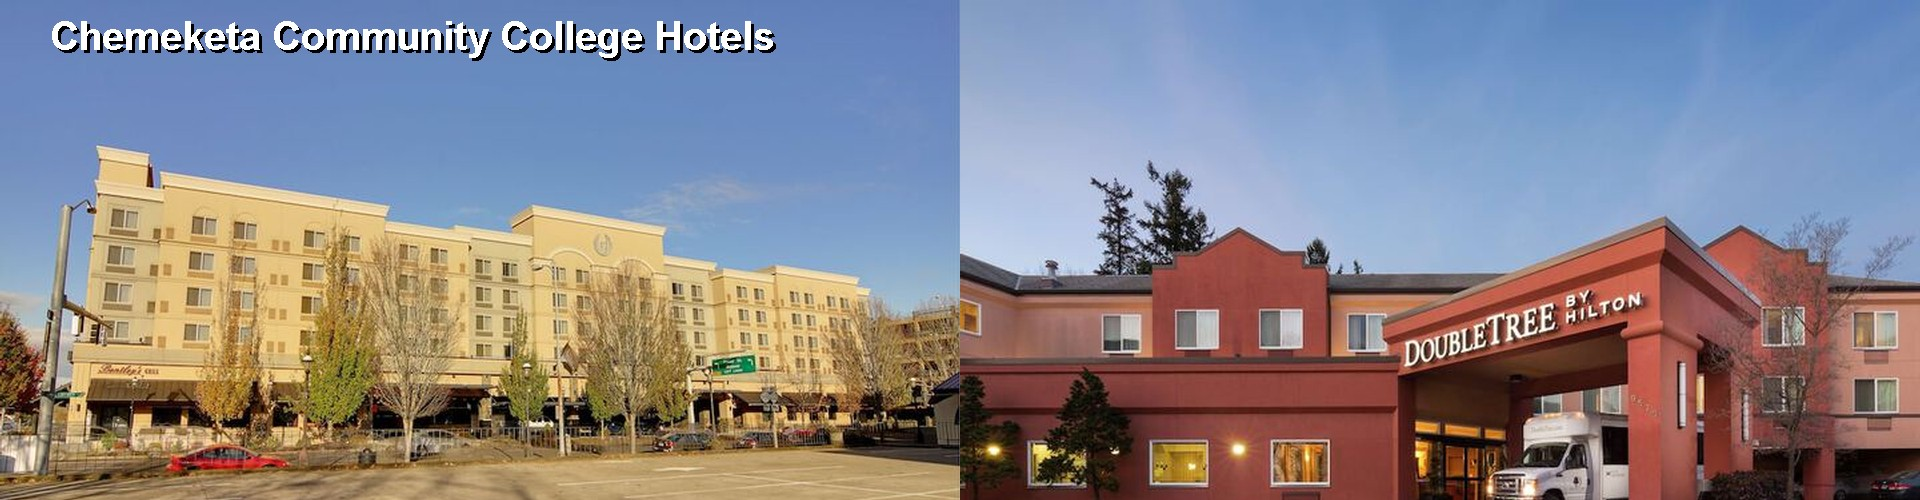 5 Best Hotels near Chemeketa Community College